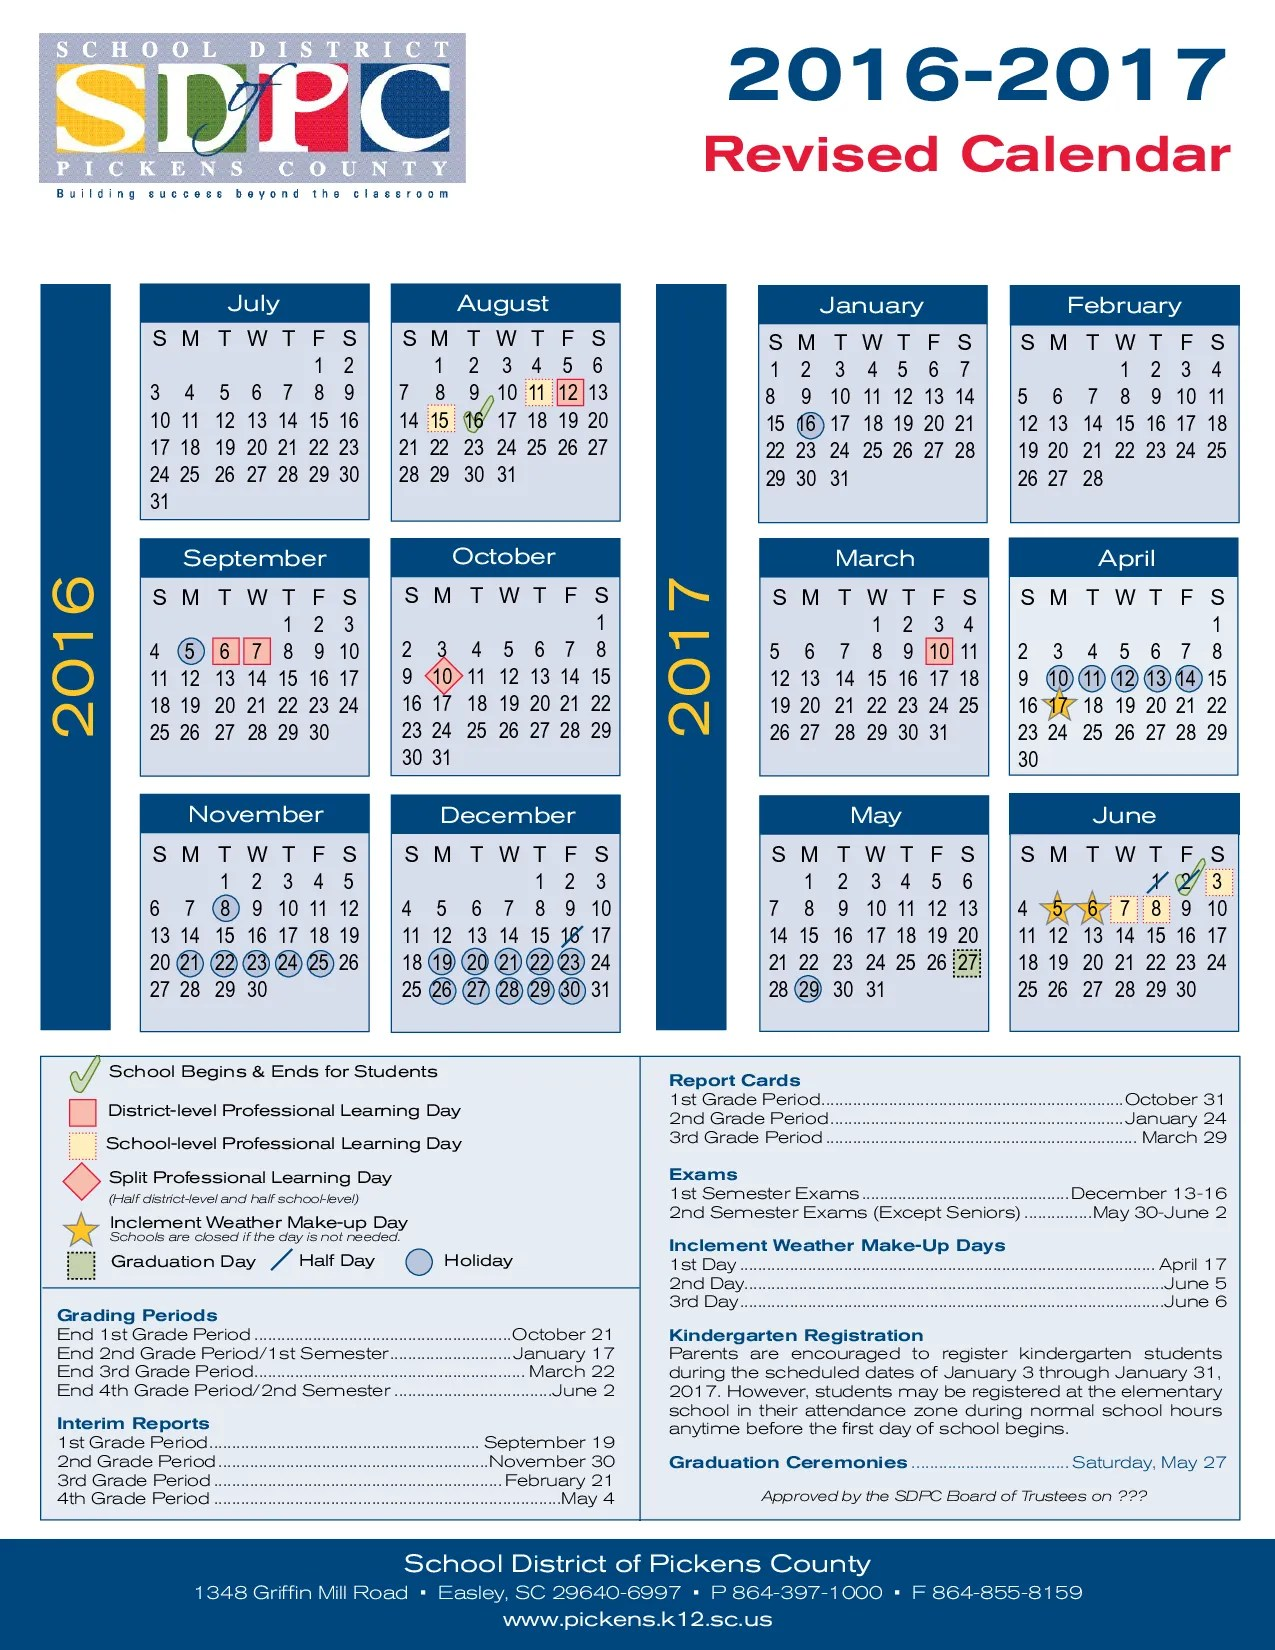 park county colorado school calendar - Ecosia